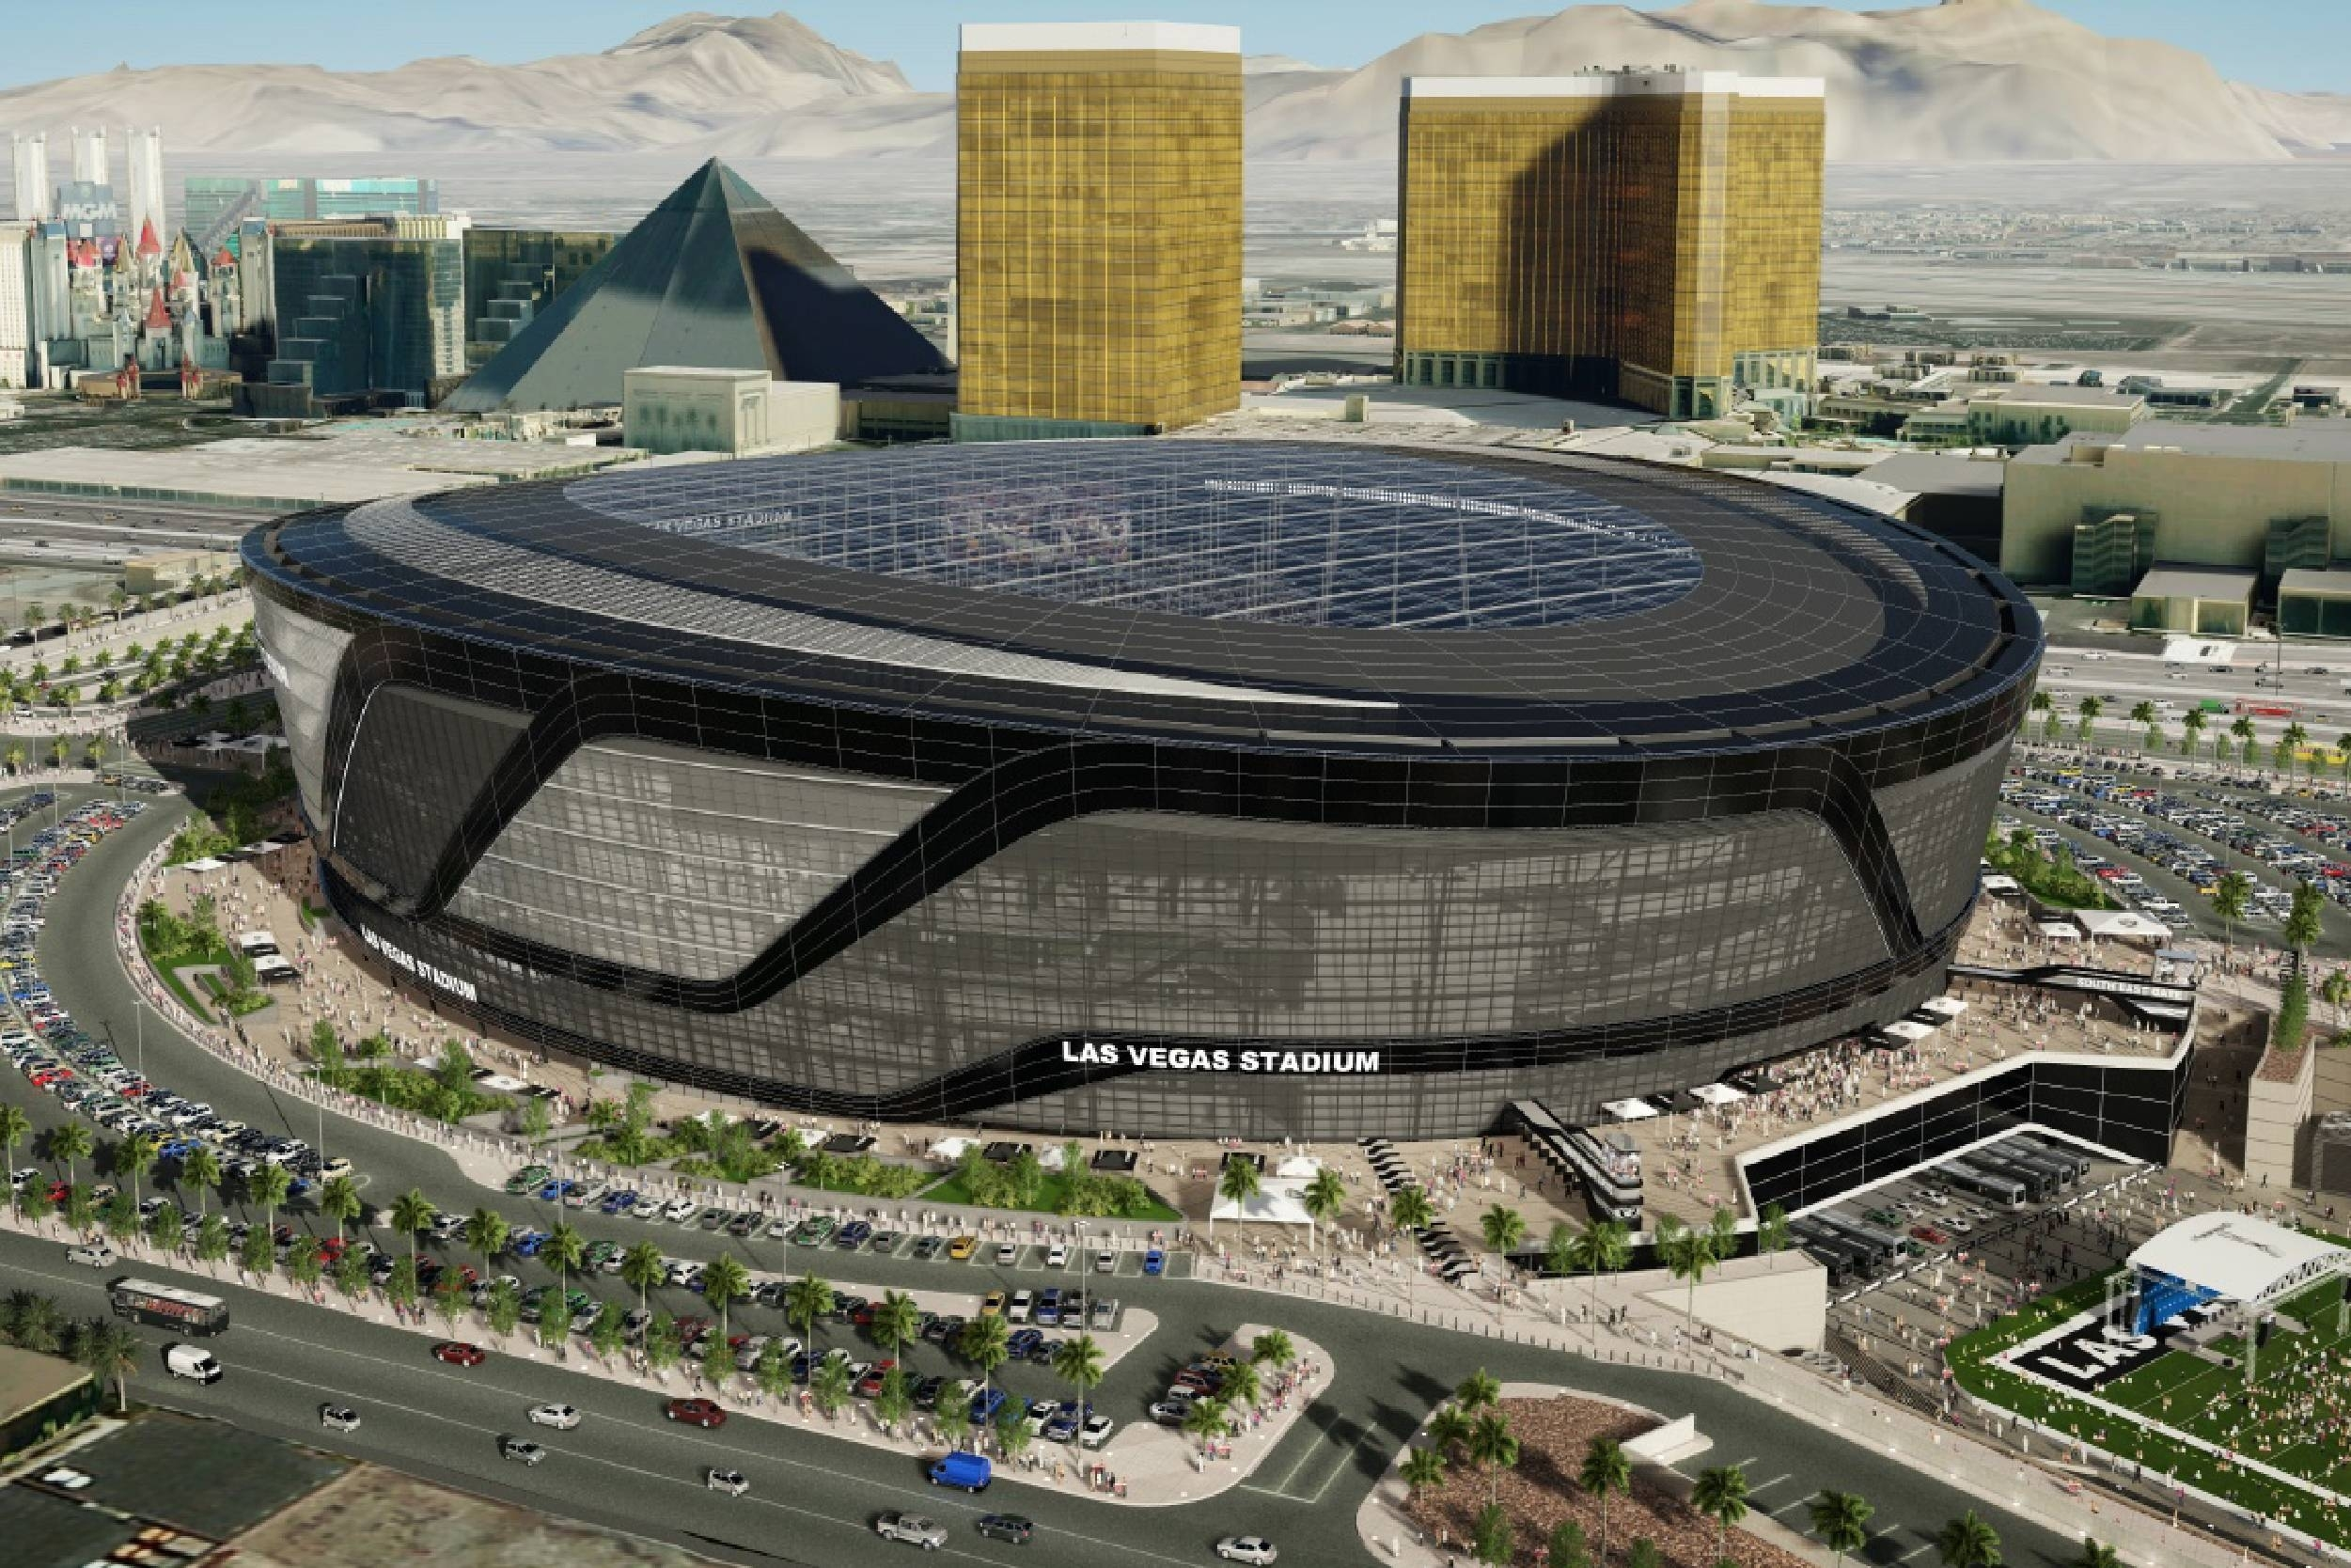 Exclusive: New Stadium Plans Reveal Super Bowl Configuration intended for Super Bowl Seating Capacity Requirements